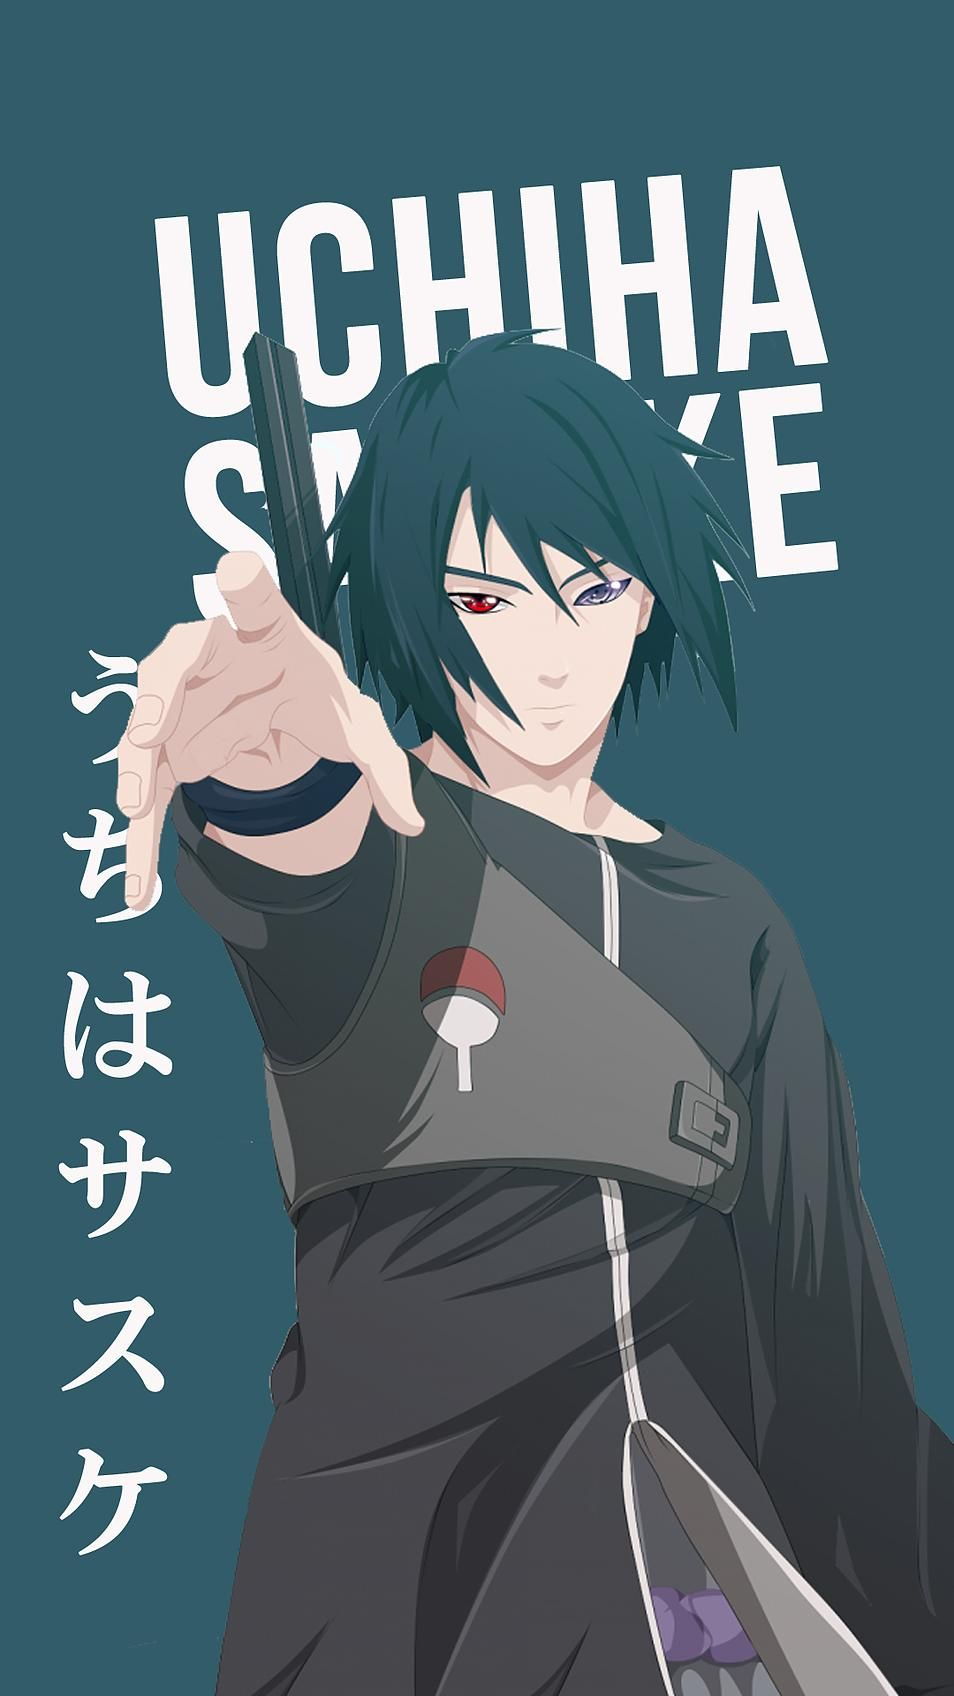 Uchiha Sasuke Korigengi Wallpaper Anime Personagens